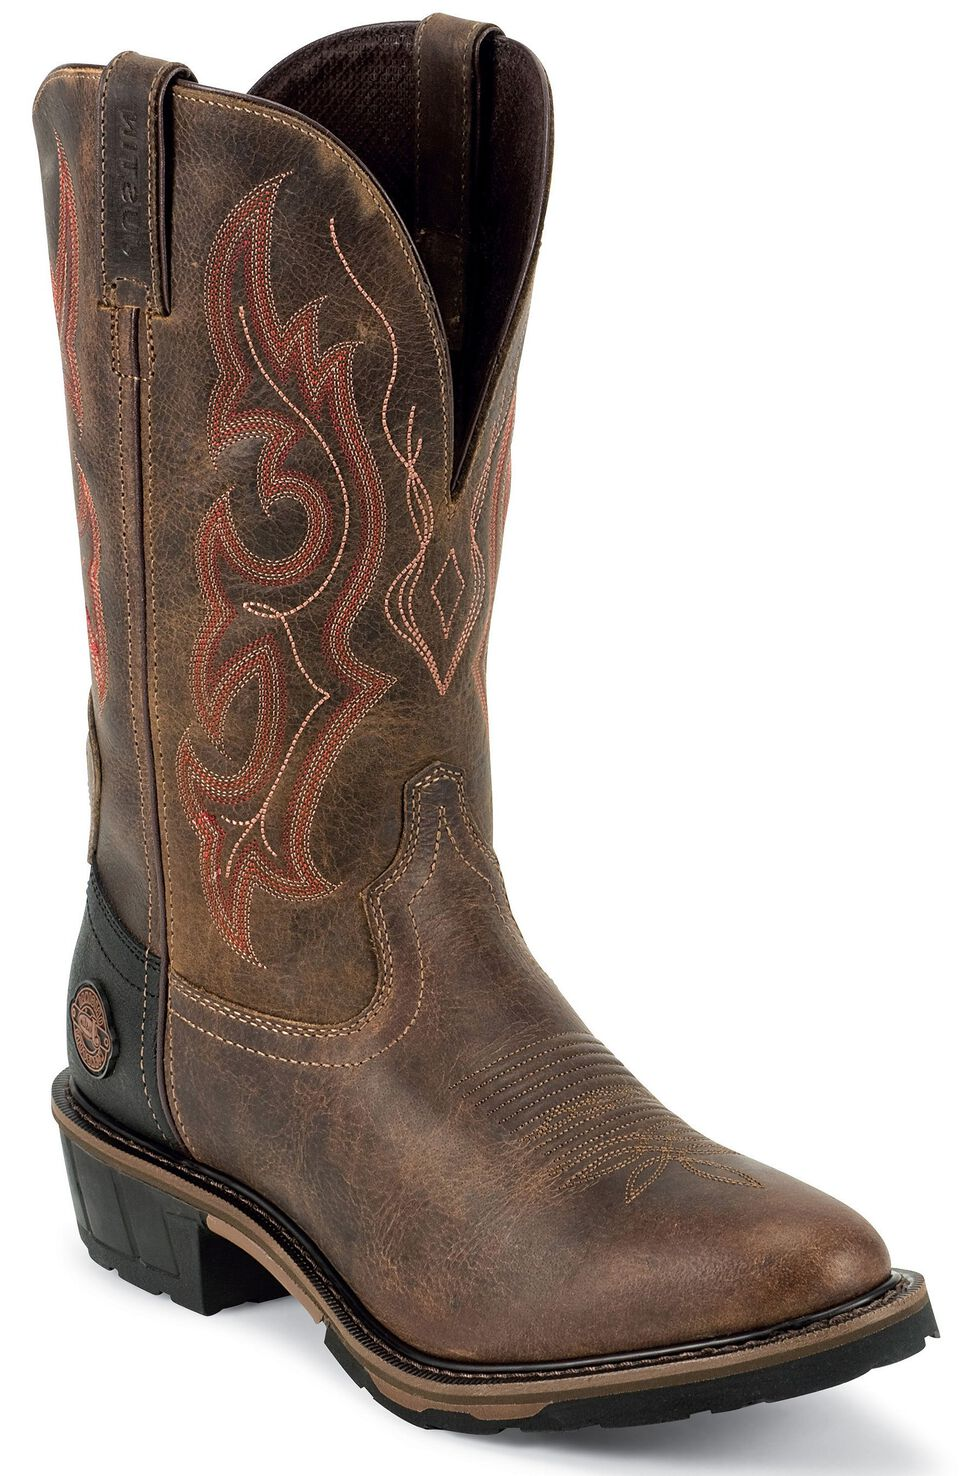 Justin Men's Hybred Cochise Waterproof Western Work Boots - Soft Toe, Brown, hi-res